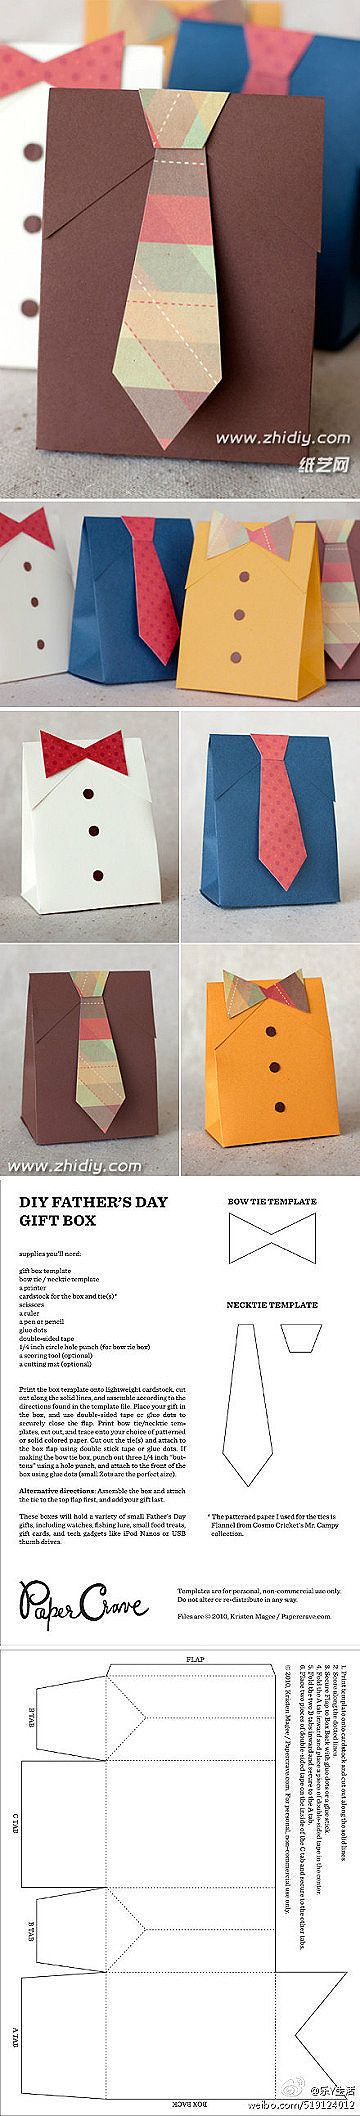 Father's Day gift: Gifts Bags, Men Gifts, Father Day Gifts, Father'S Day, Gifts Wraps, Favors Bags, Fathers Day, Gifts Boxes, Baby Shower